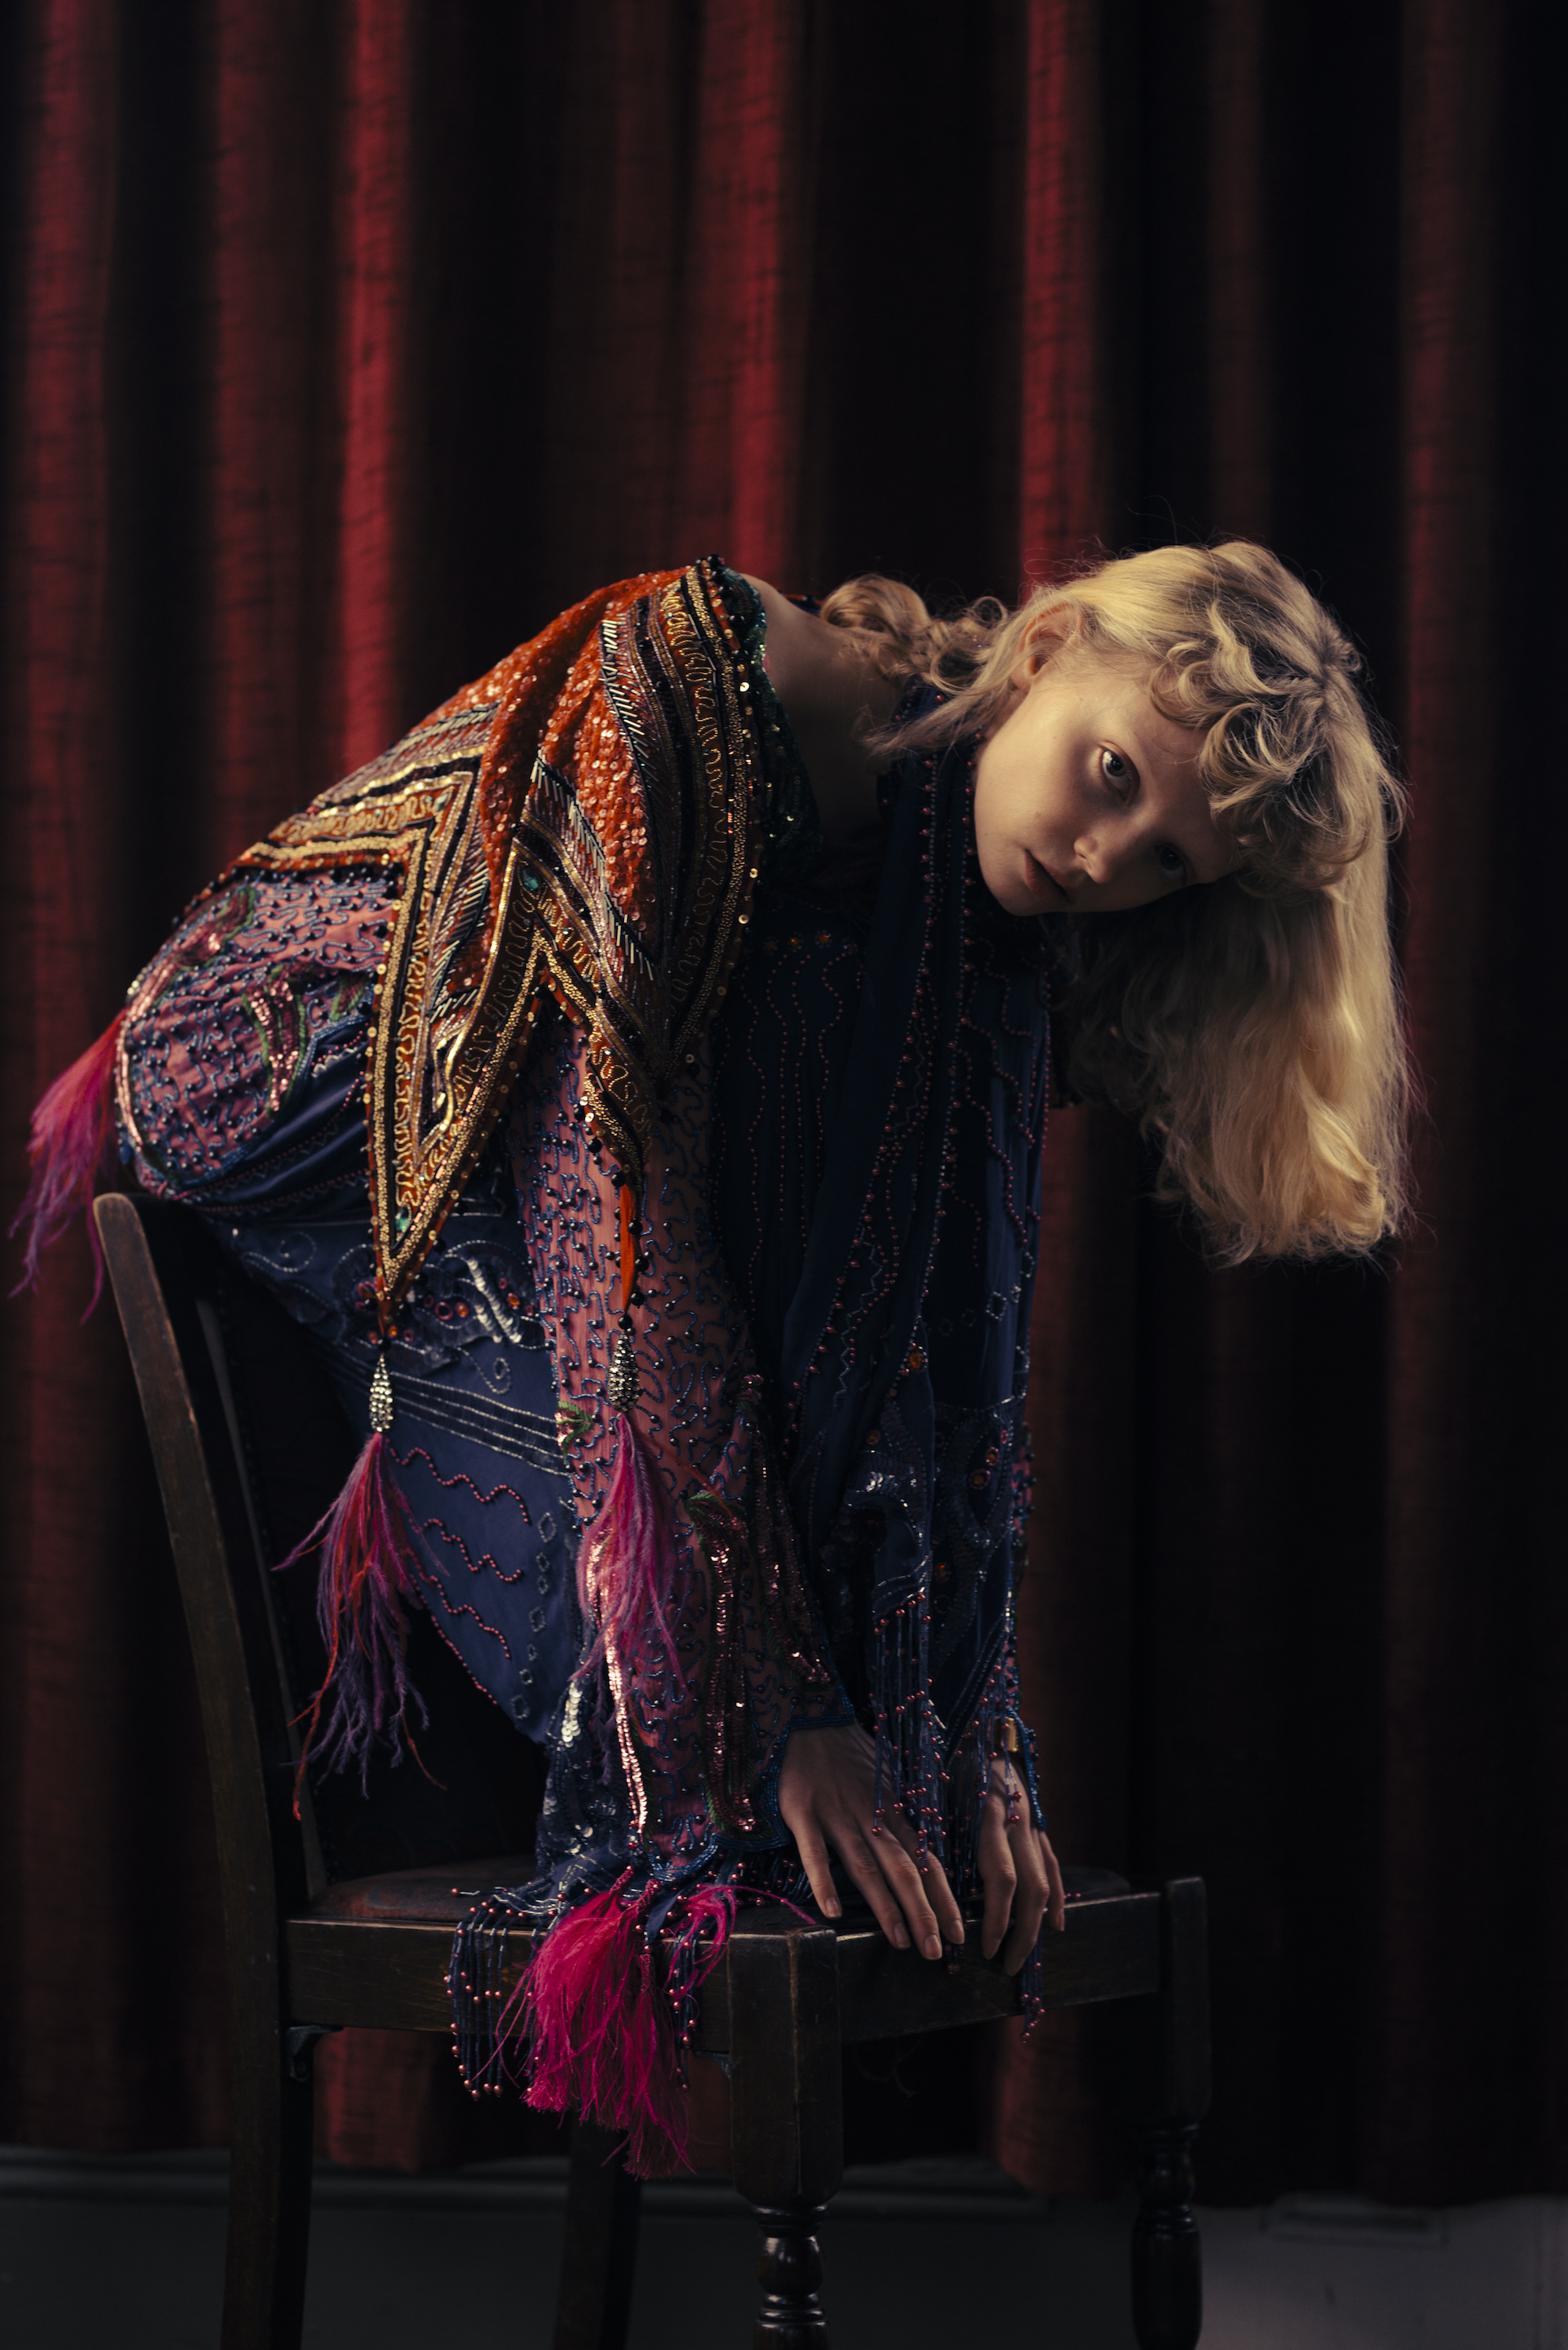 Gucci fashion editorial in the Spring 19 issue of Wonderland model in sequin dress